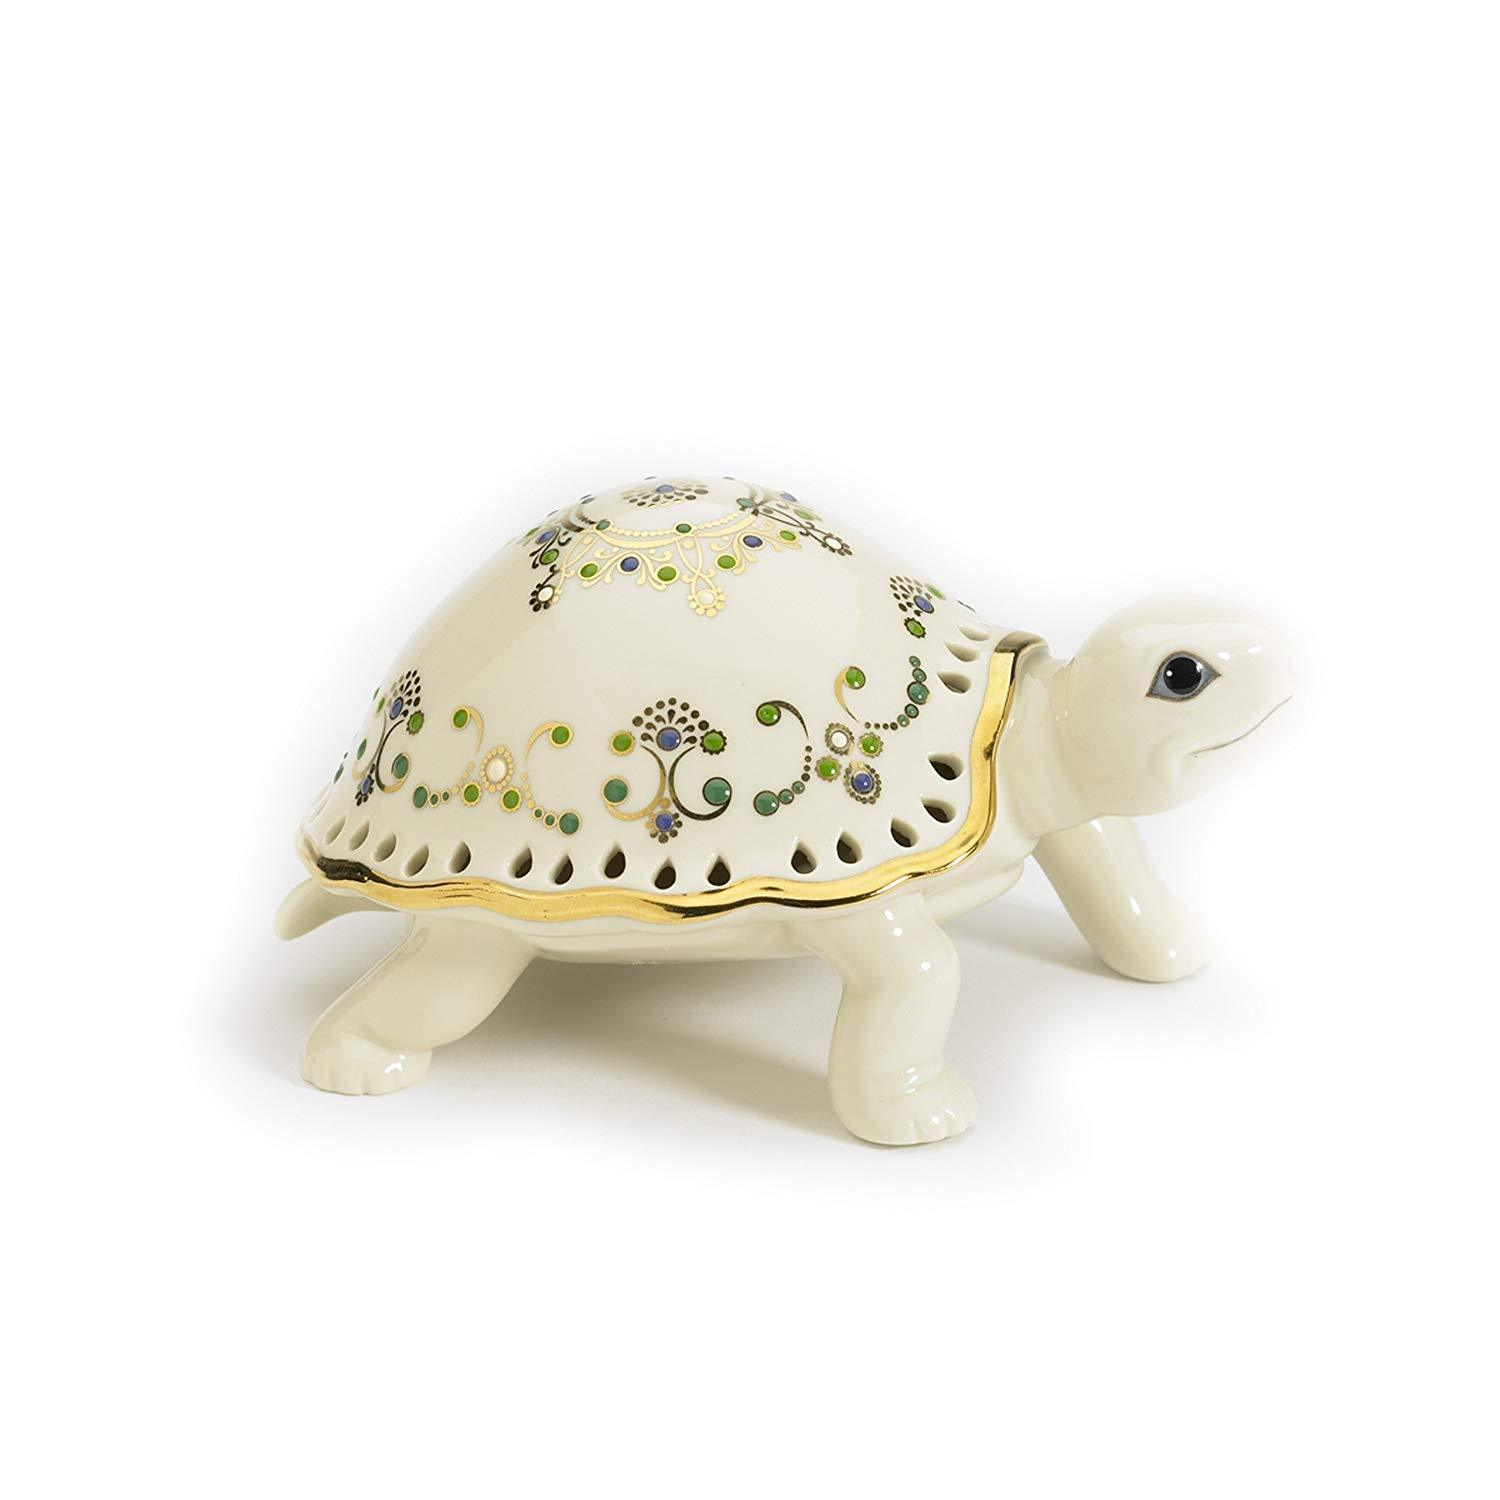 Primary image for Lenox Jewels of Light Turtle Sculpture with COA